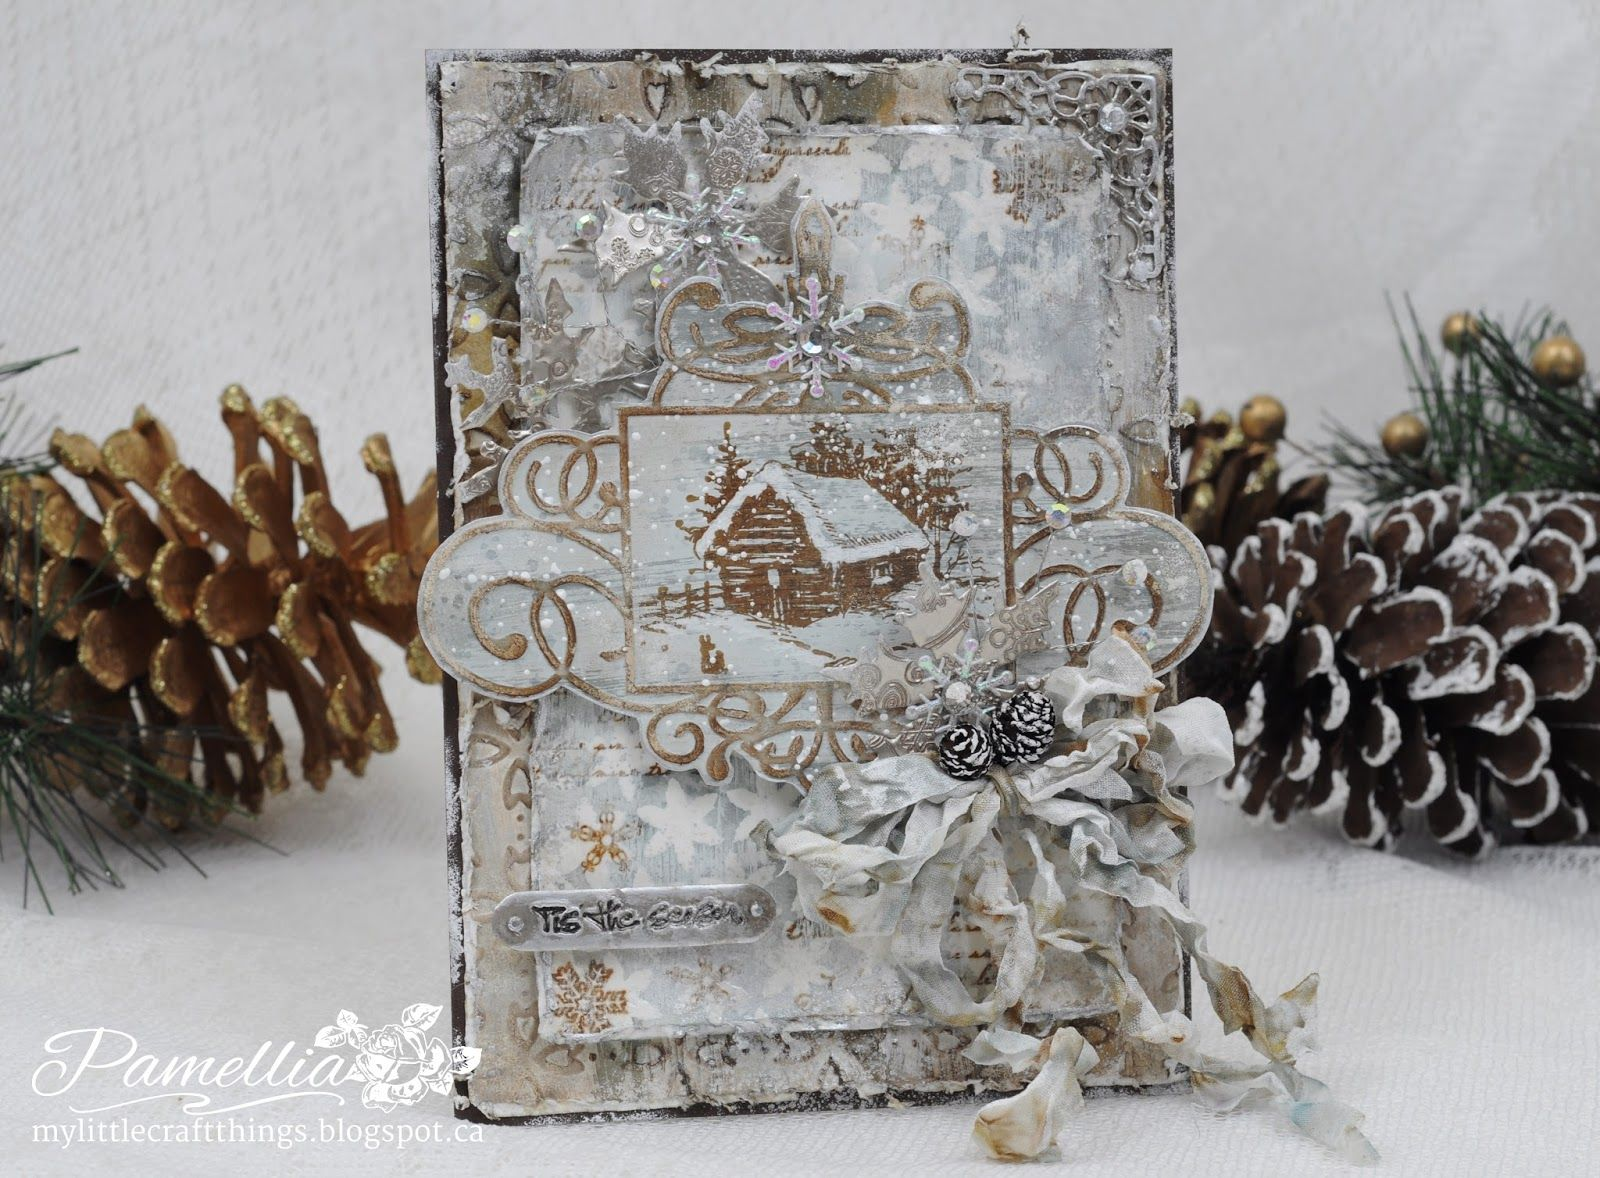 My Little Craft Things: Christmas Cottage - Platinum Style